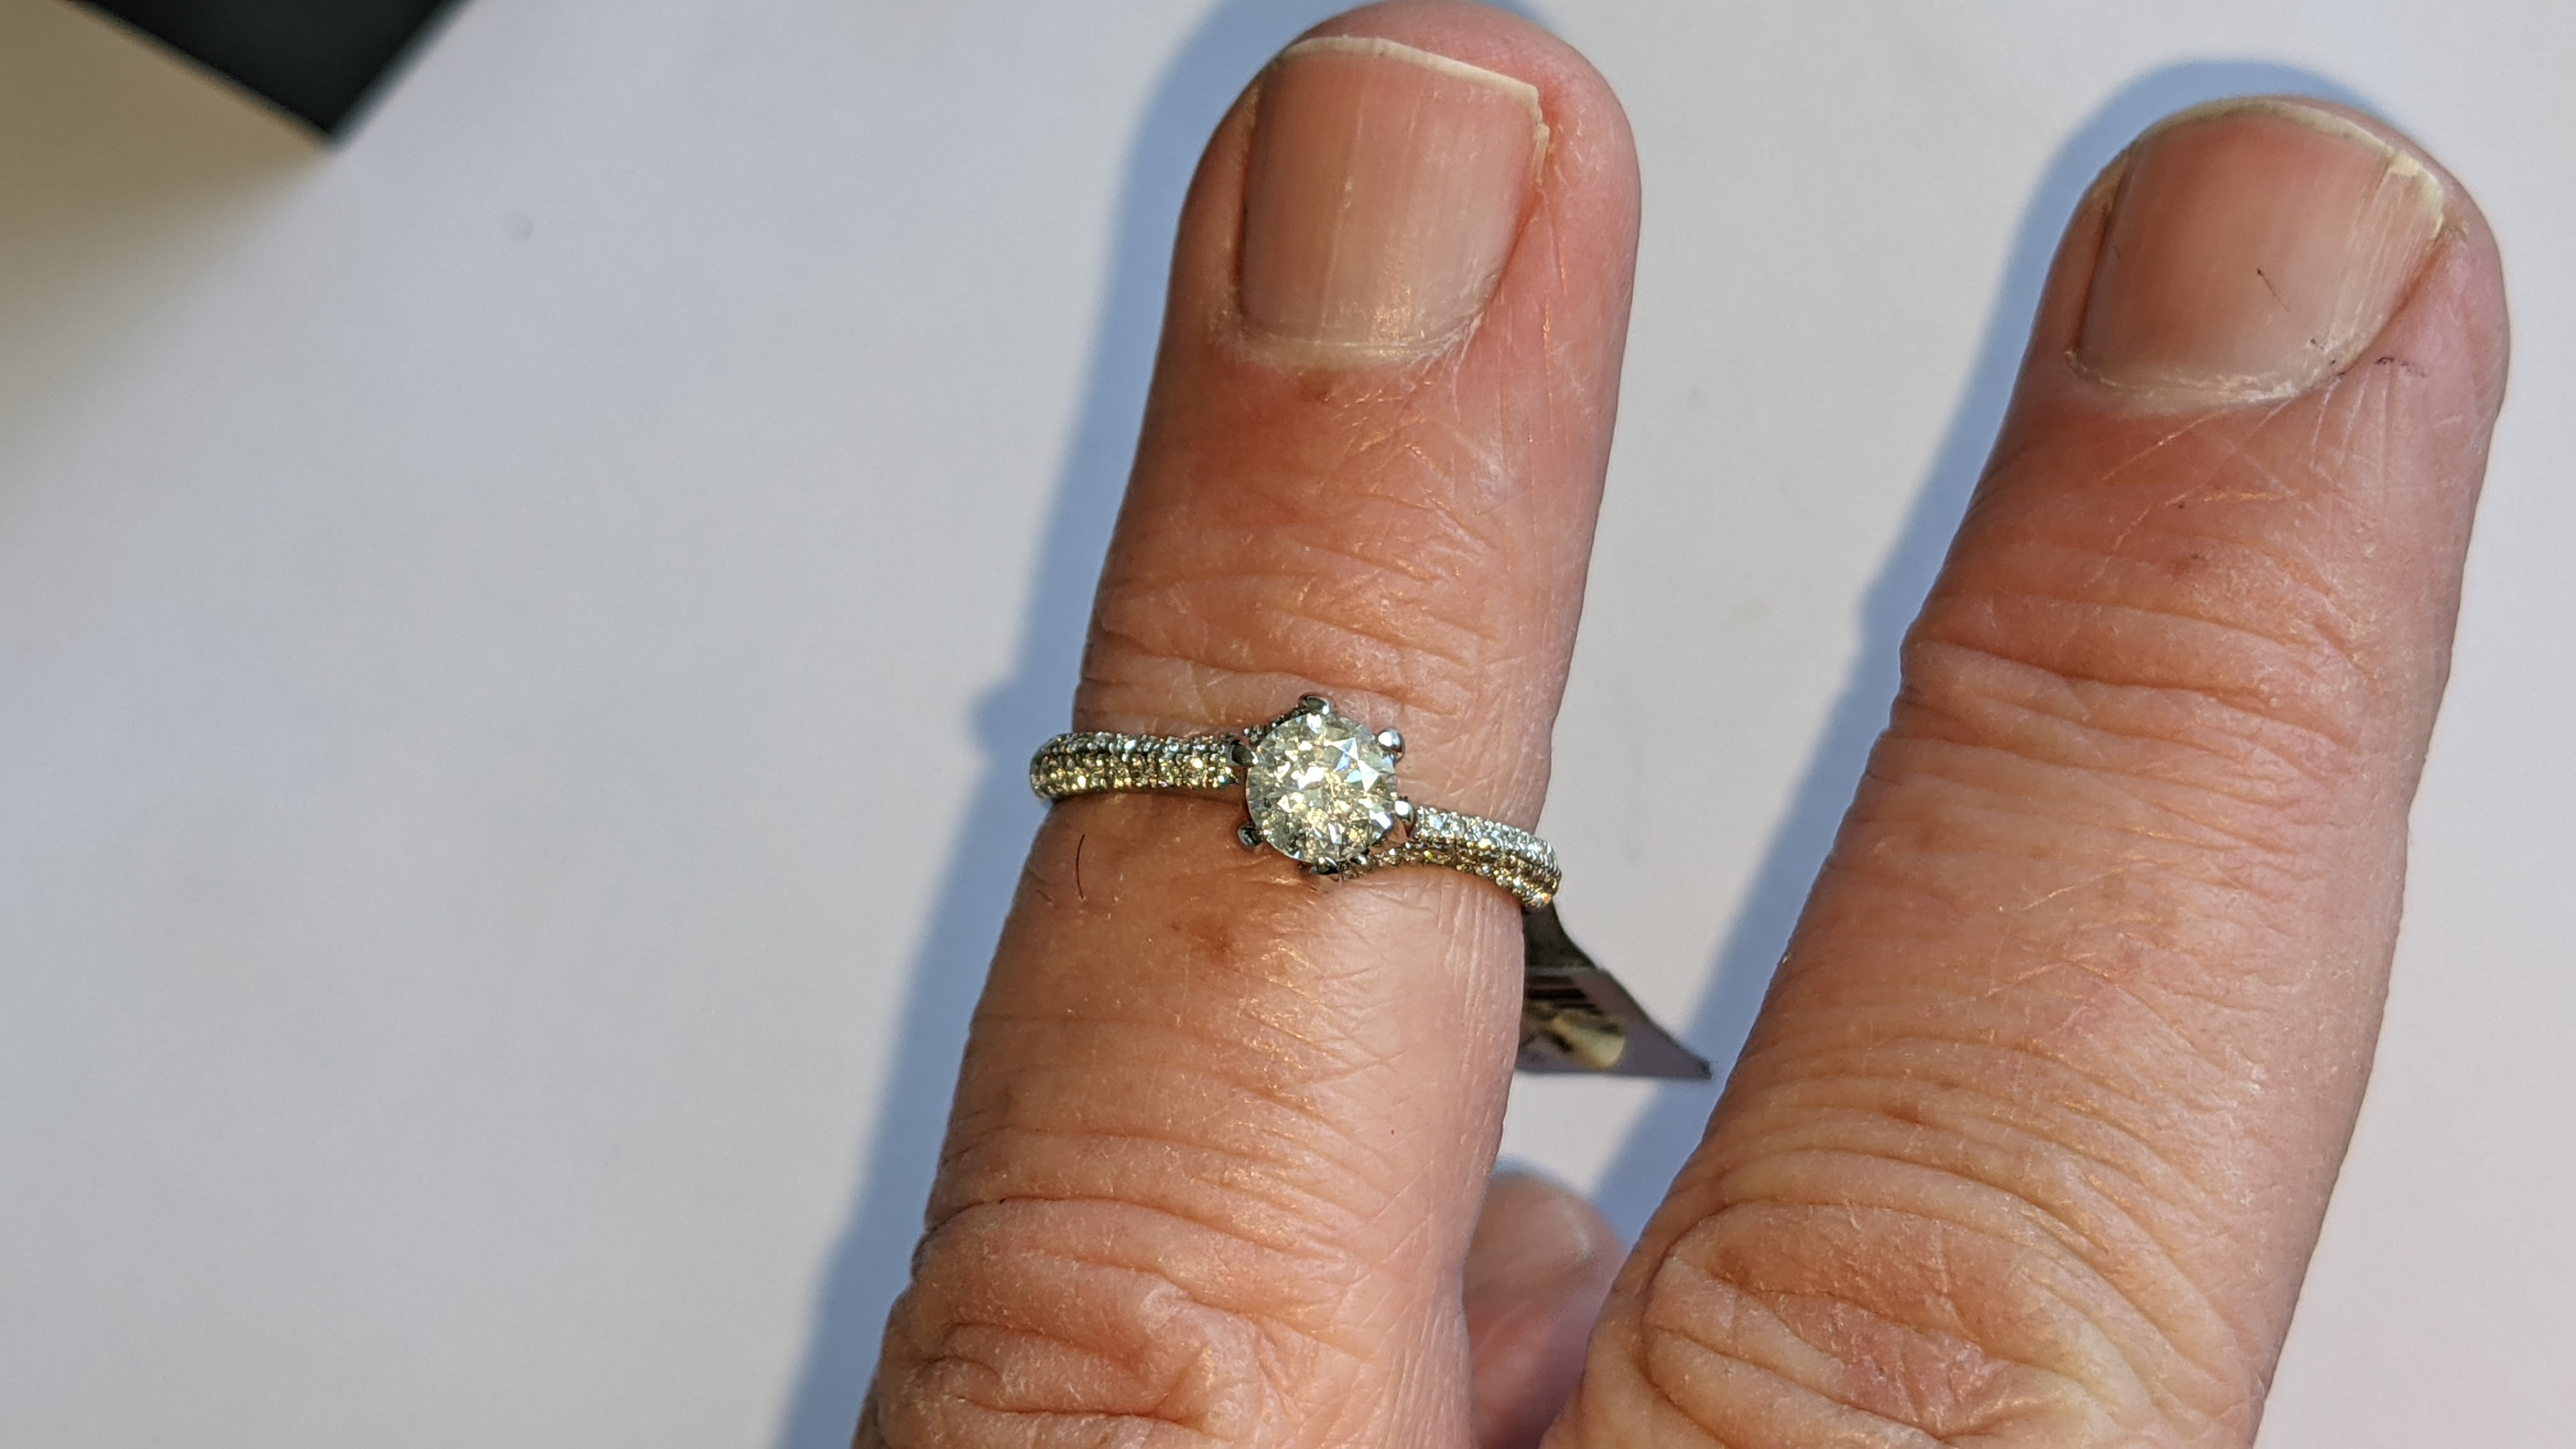 Platinum 950 diamond ring with 0.55ct central stone & 0.348ct of smaller stones on the shoulders. RR - Image 13 of 16